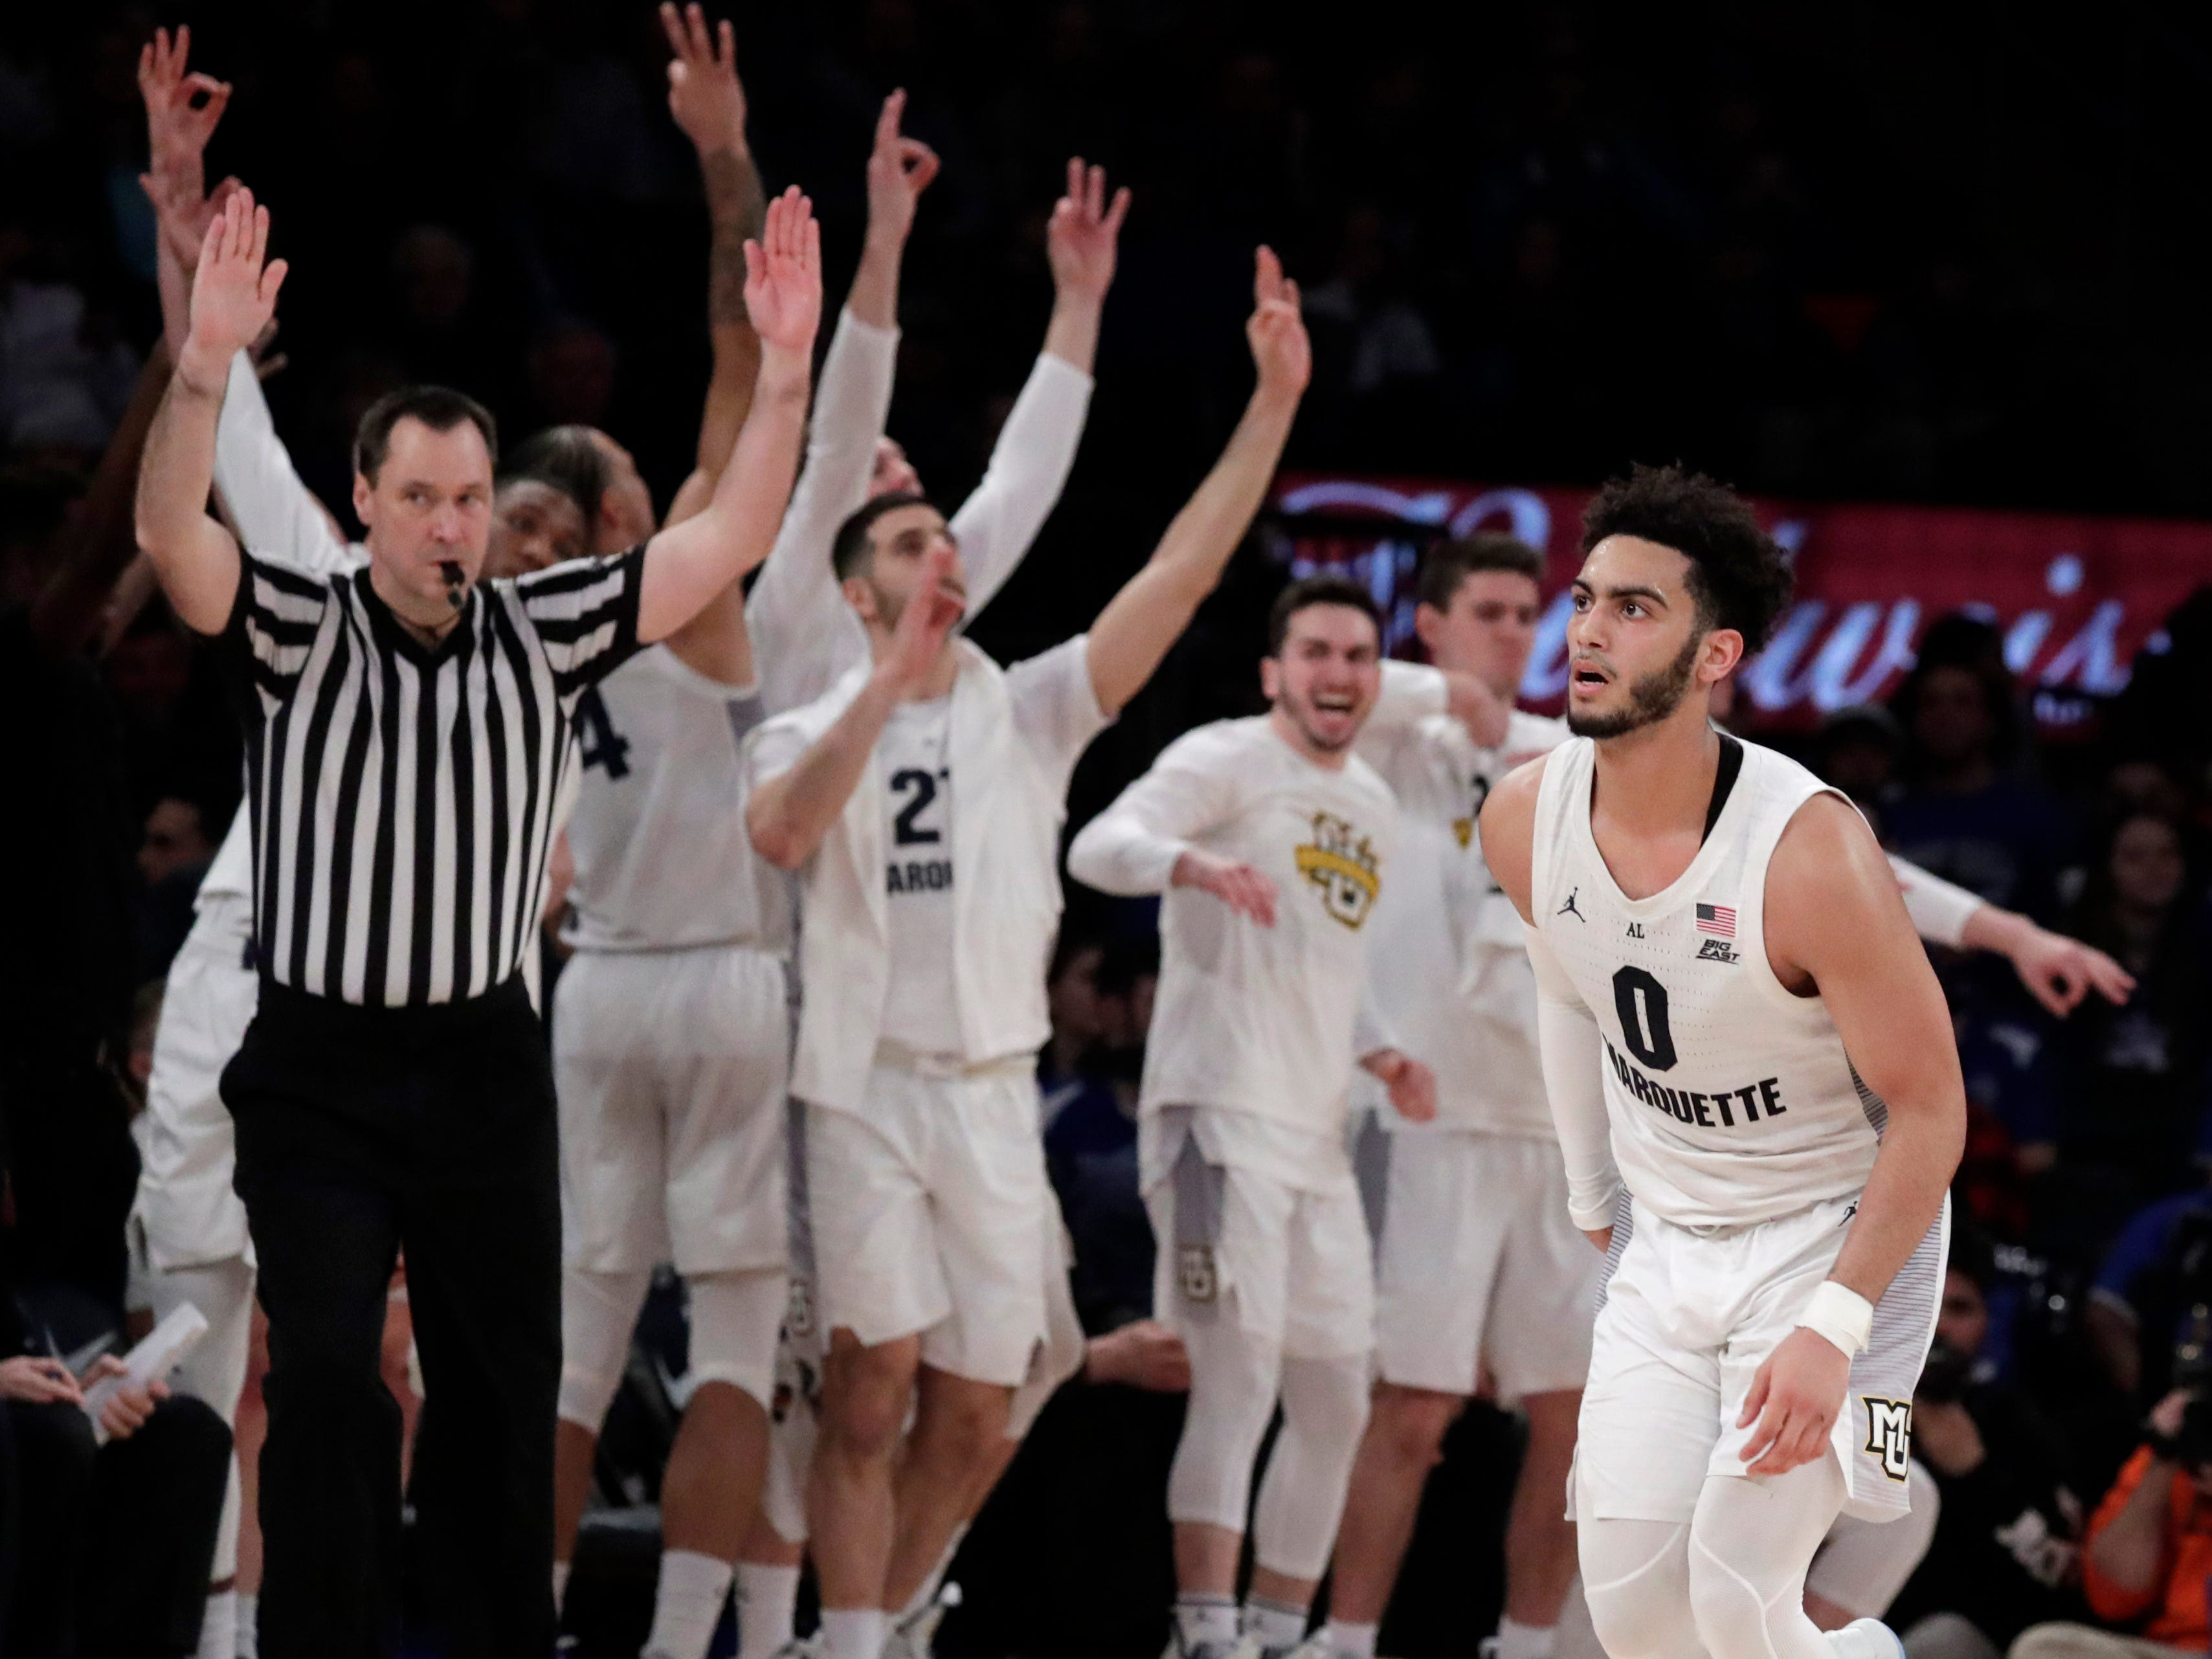 The Marquette bench celebrates after guard Markus Howard hits a three-point shot in the Big East quarterfinals Thursday night.